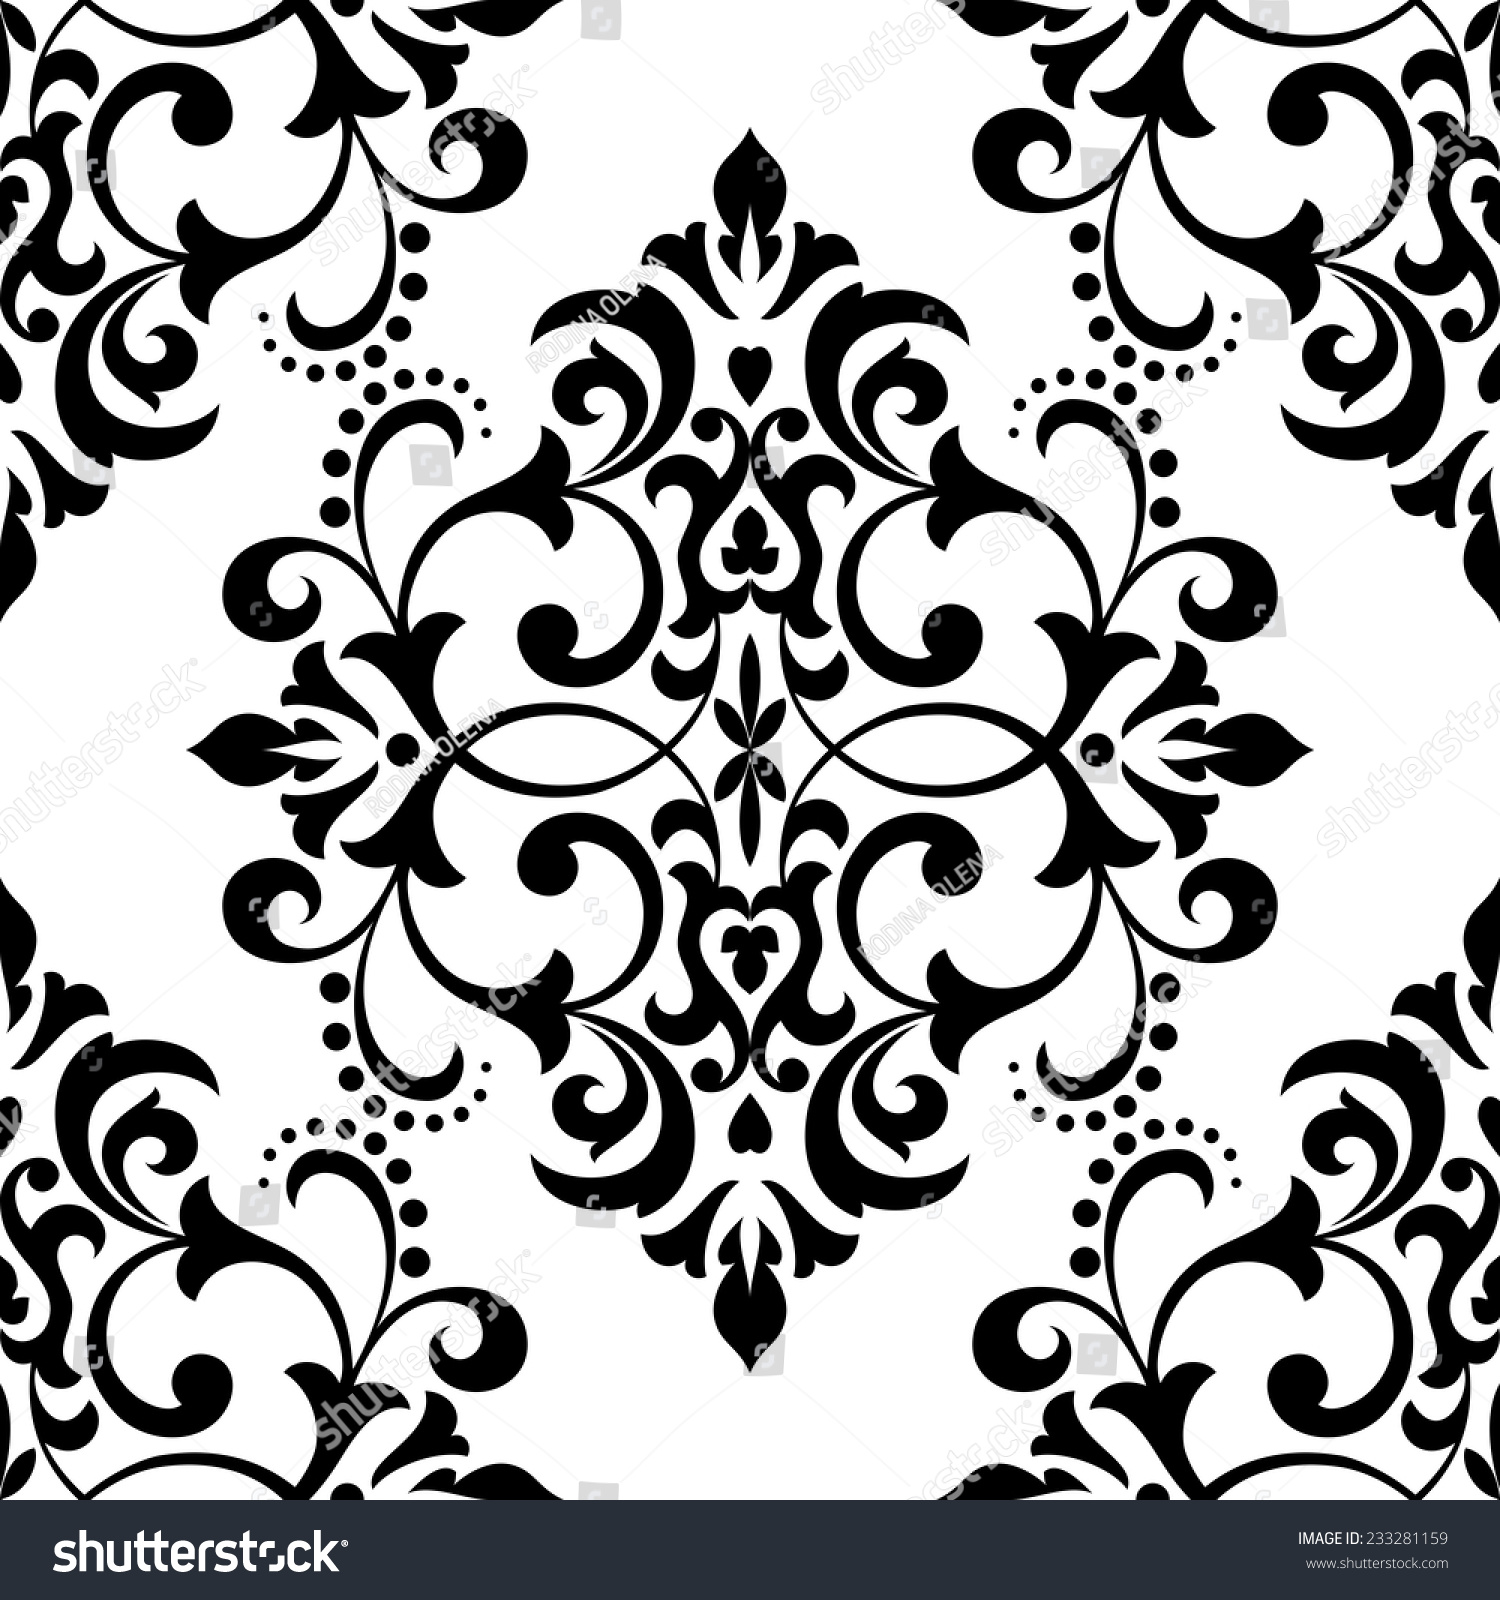 Floral Pattern Black And White Background